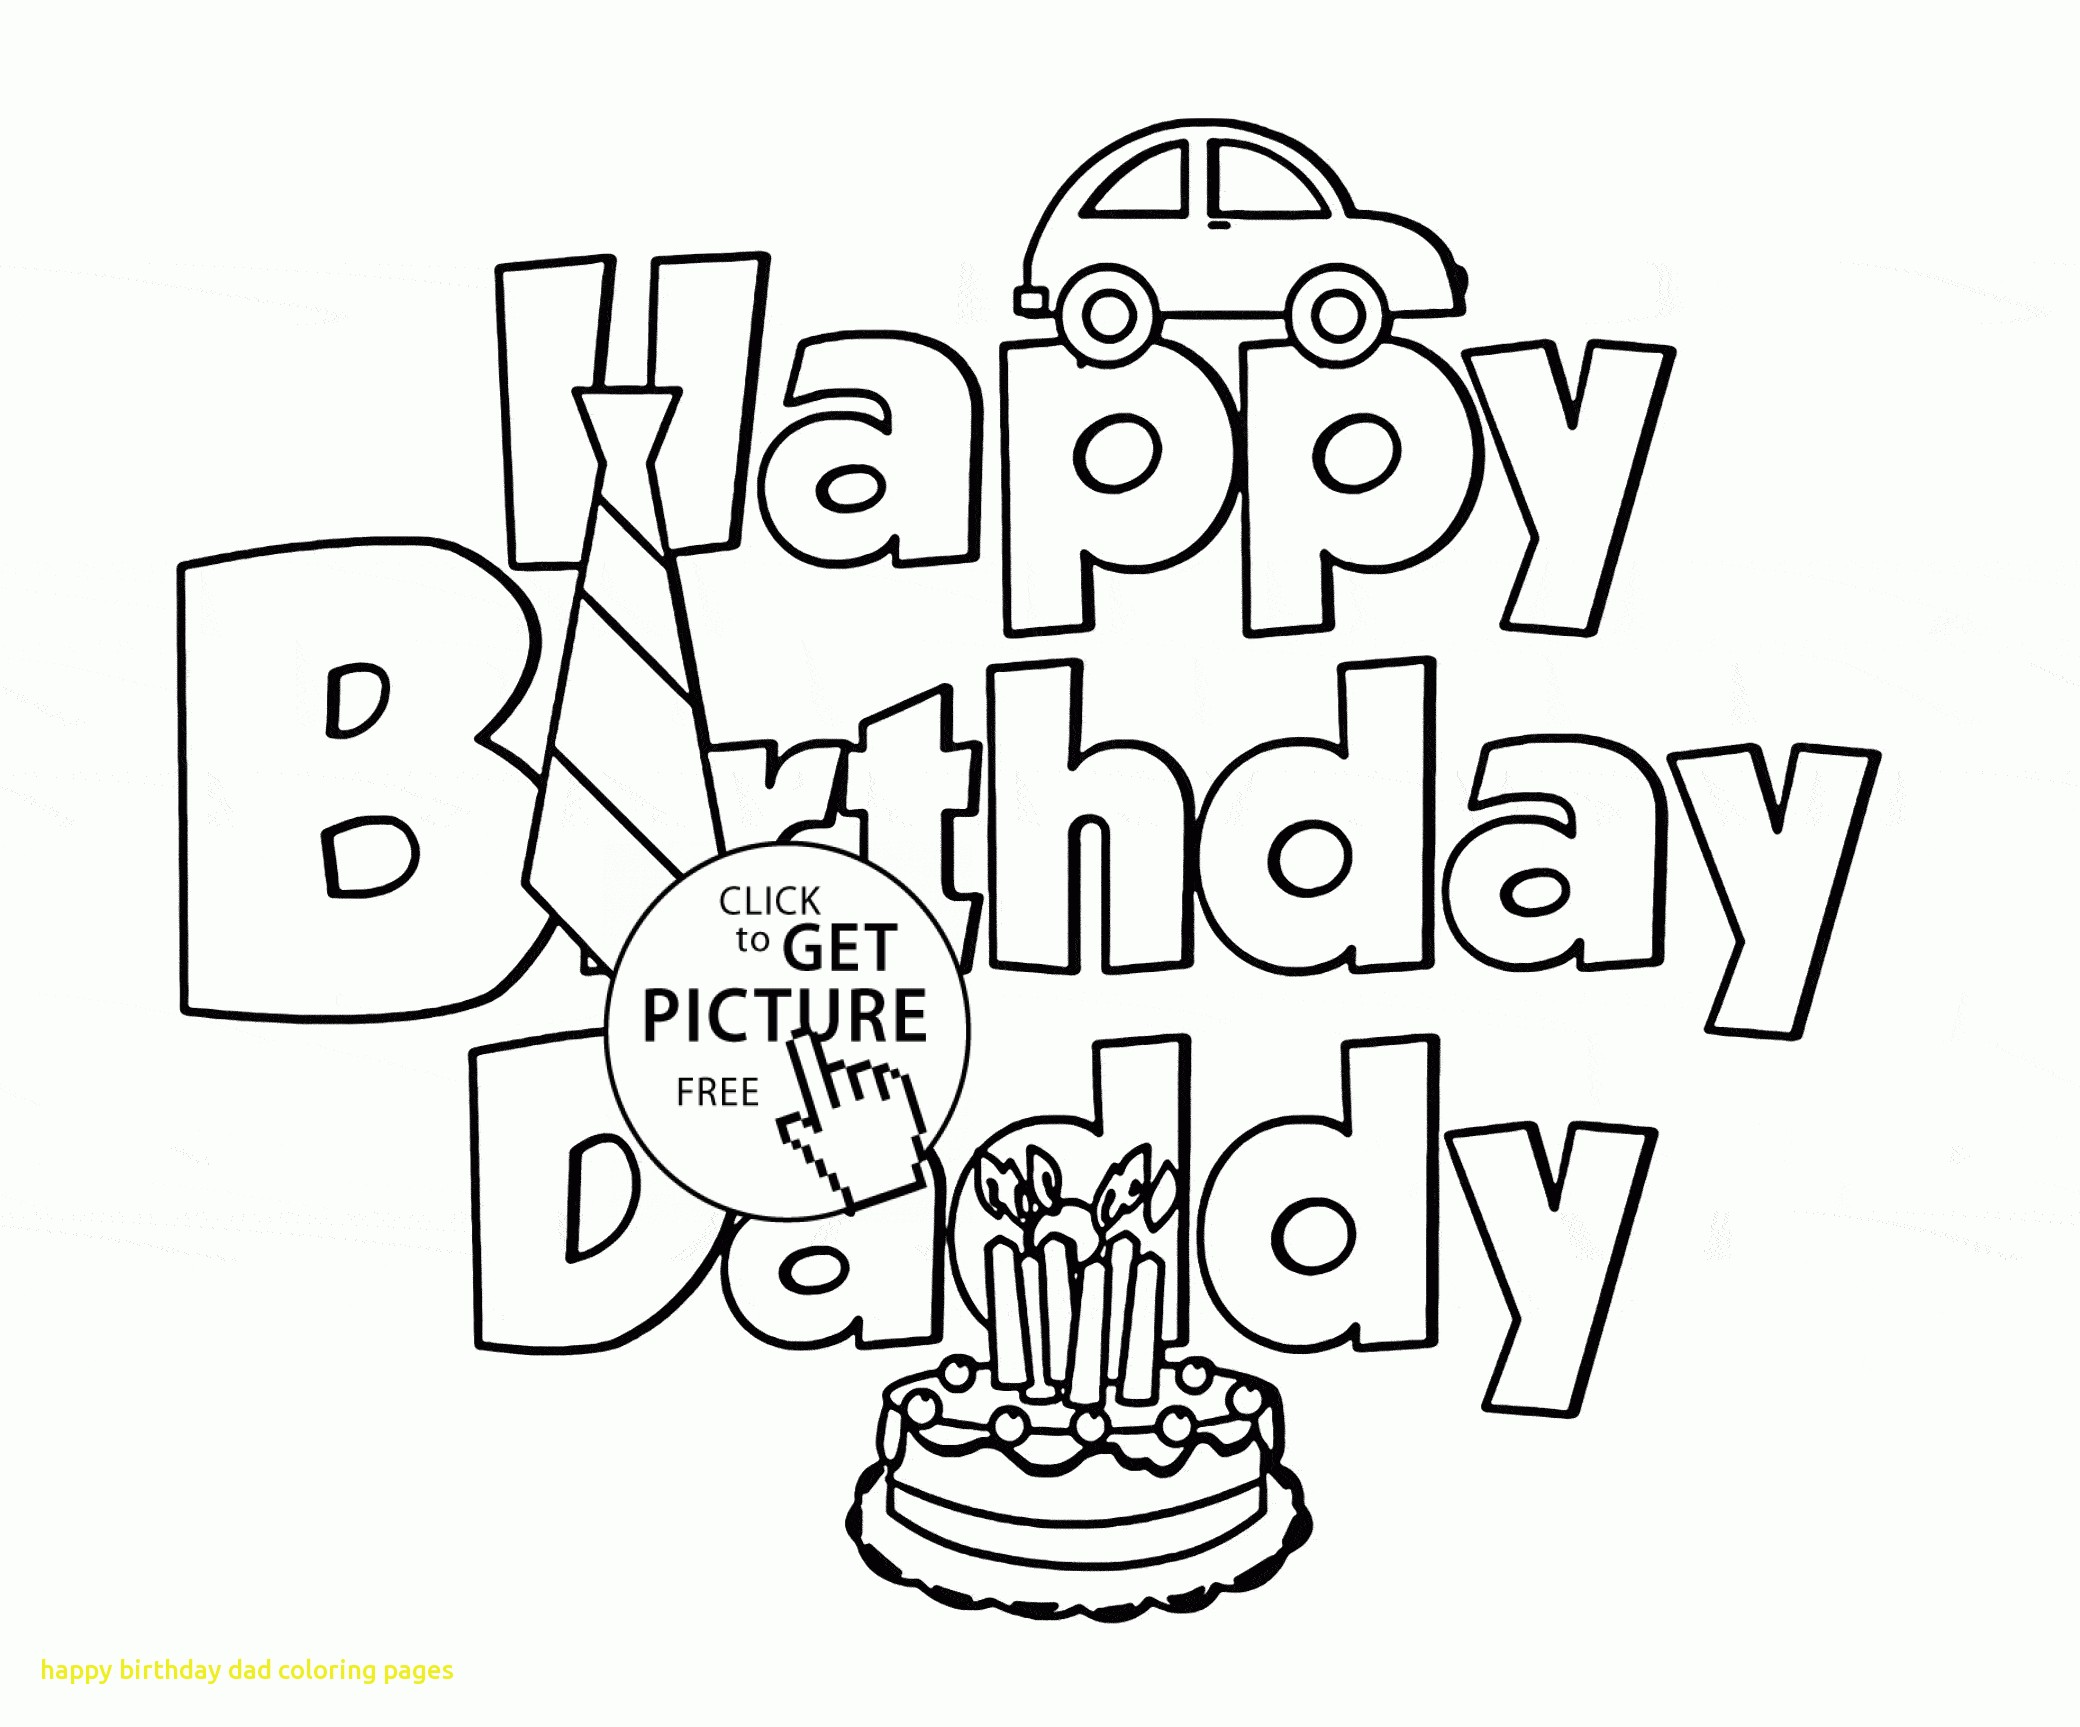 Happy Birthday Papa Coloring Pages At Getdrawings Free Download